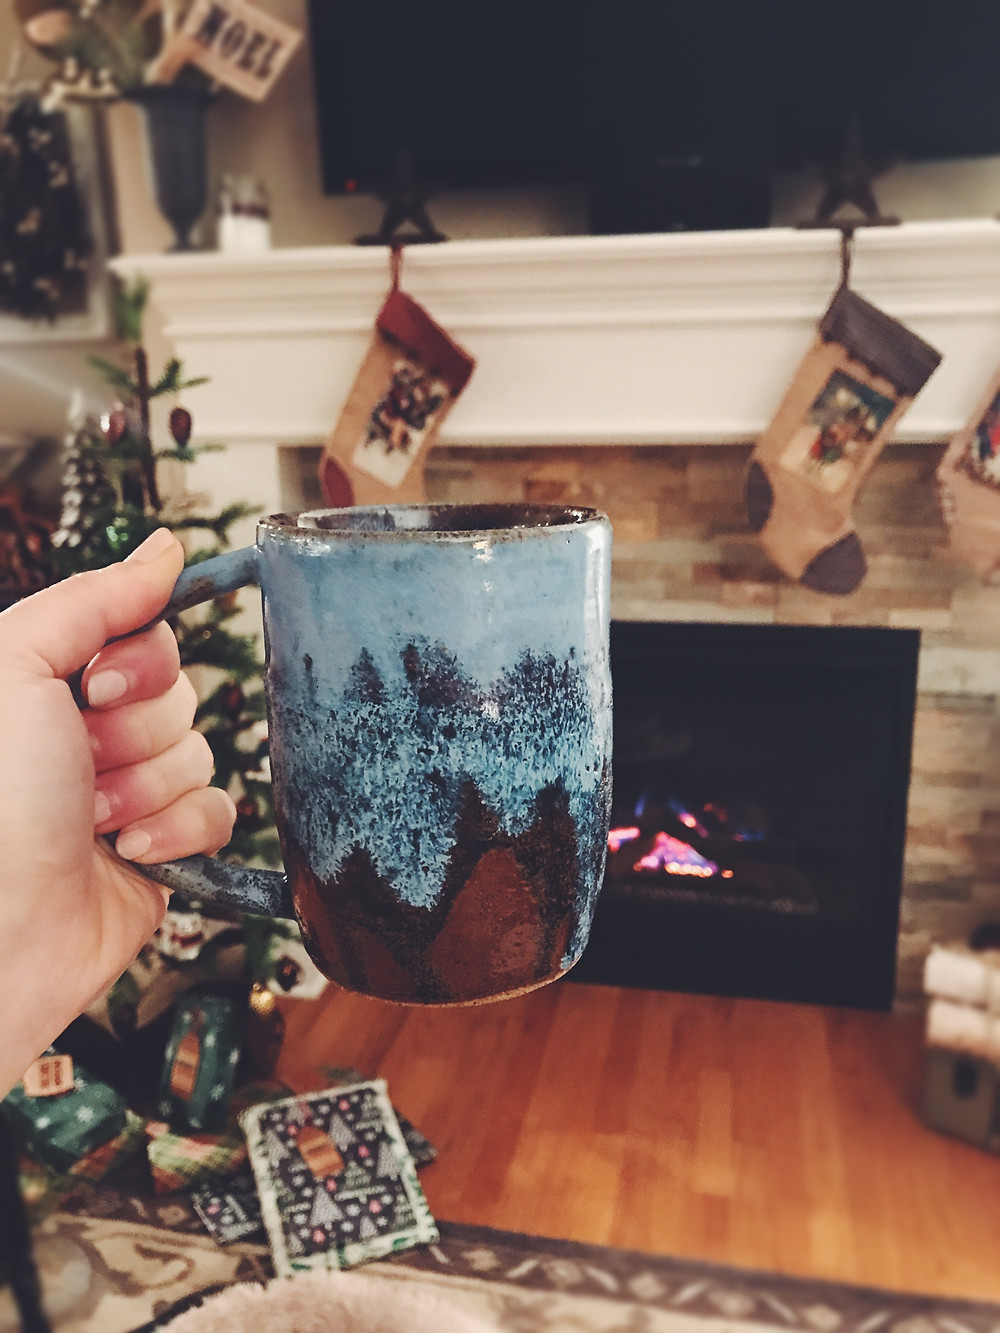 enjoying some koffee by the fire...